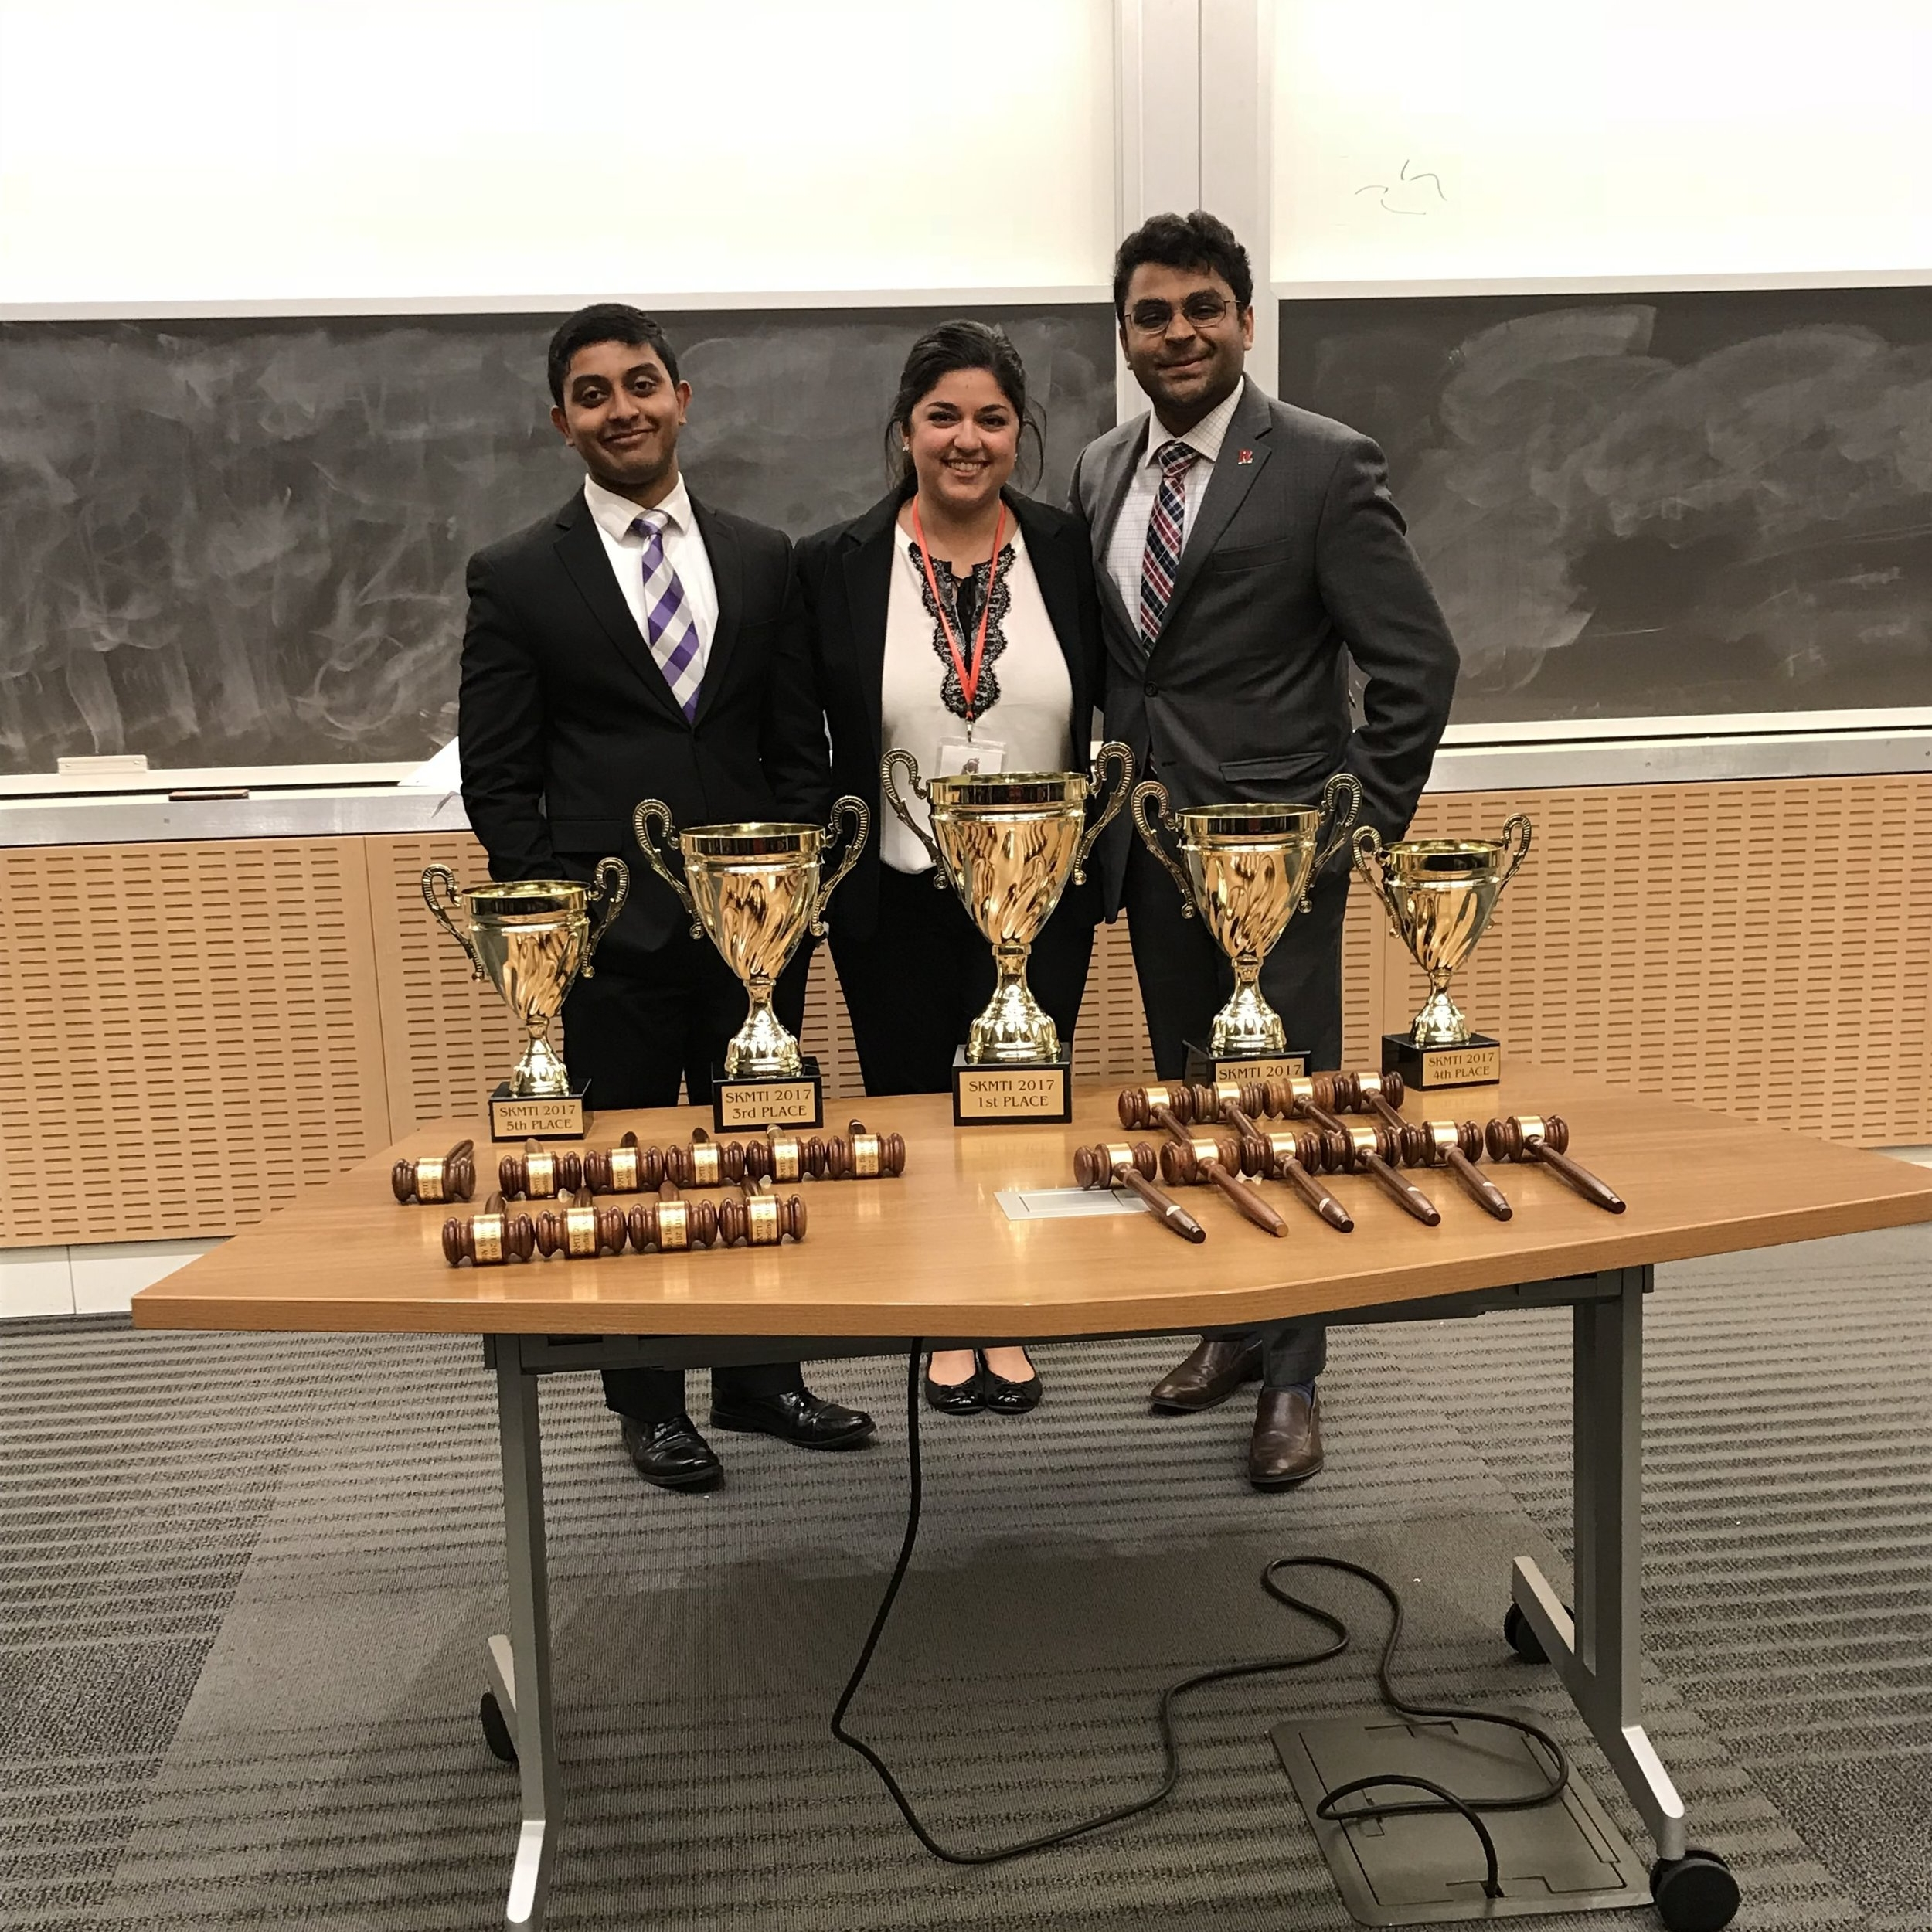 Michael Nanchanatt - Tournament Director, A-Team Captain                                                                           Nicoletta Eby - President                                                               Anish Patel - Tab Room Director, Coach